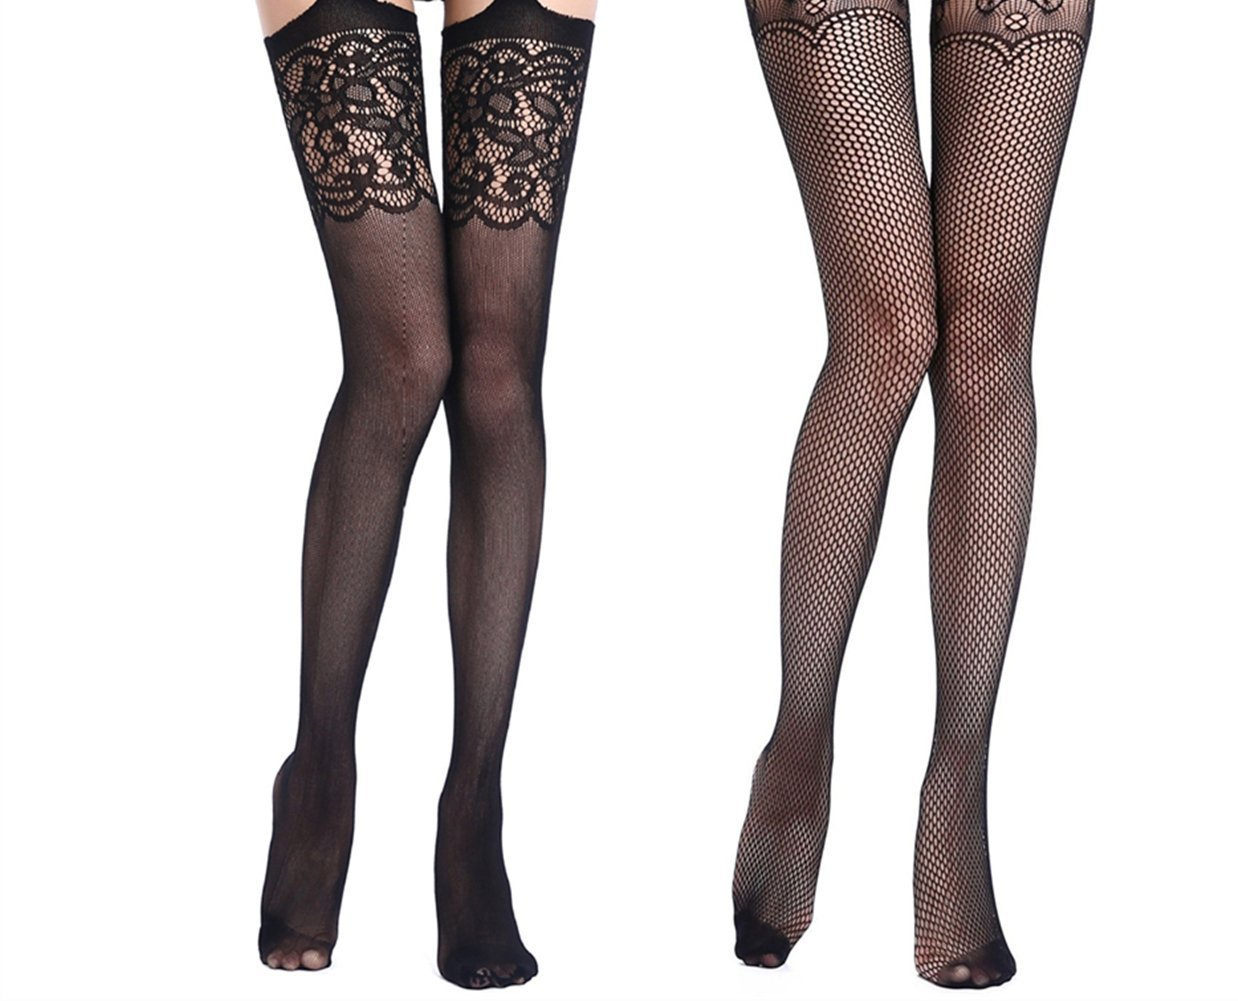 ZIUMUDY Women's Fishnet Tights Pantyhose Stretchy Thigh-High Stockings Black